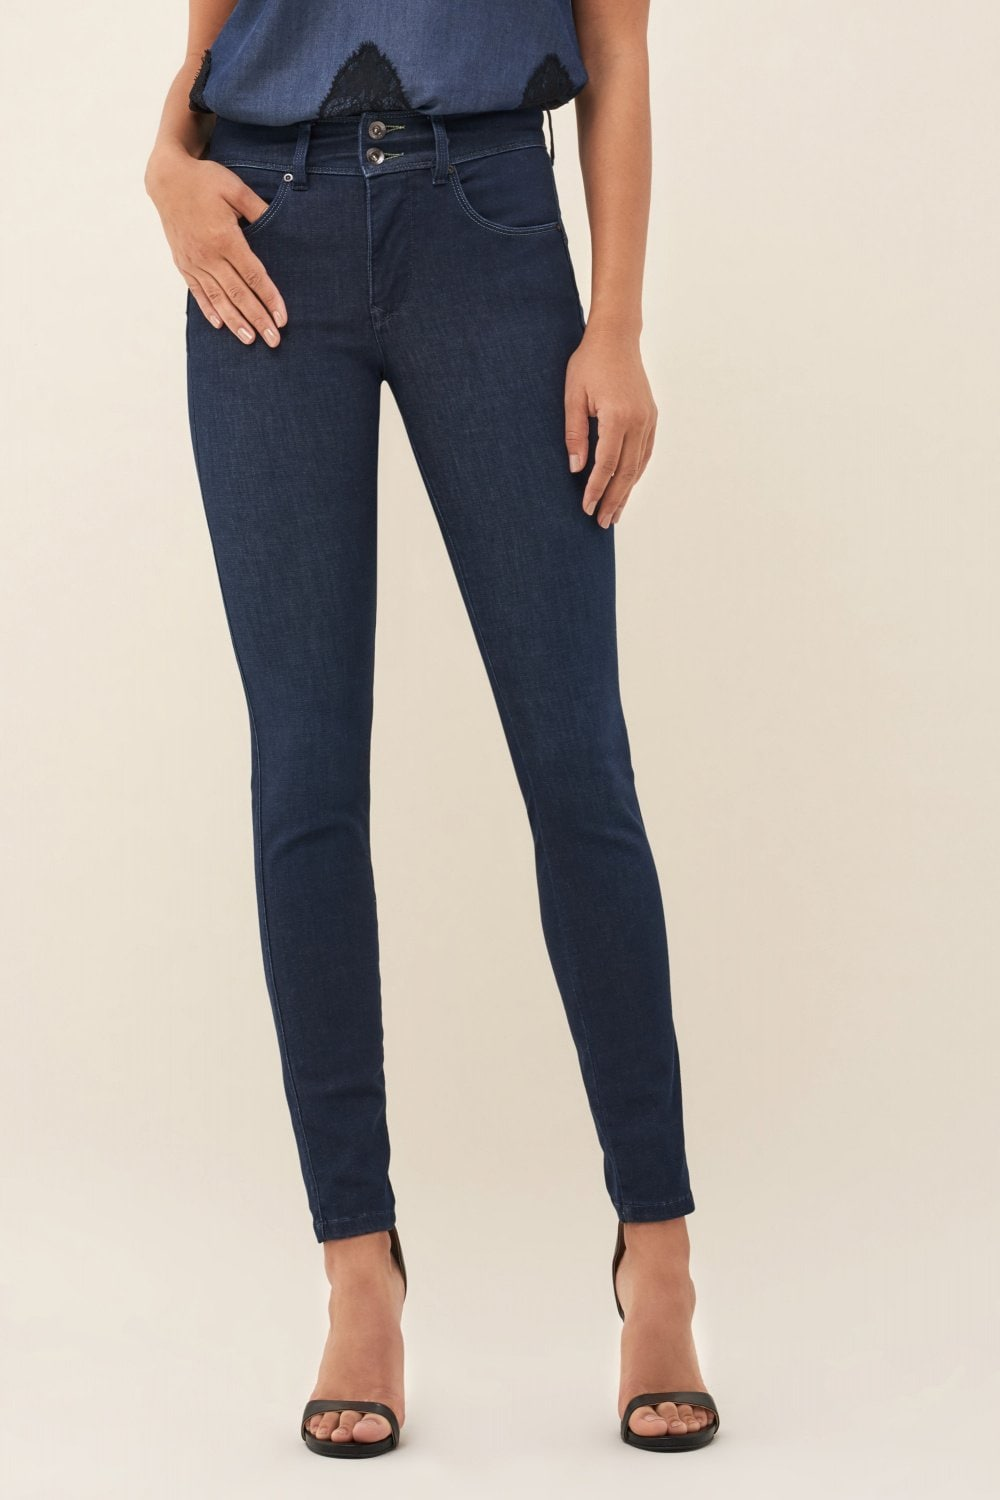 Vaqueros Push In Secret skinny Denim2GO - Salsa